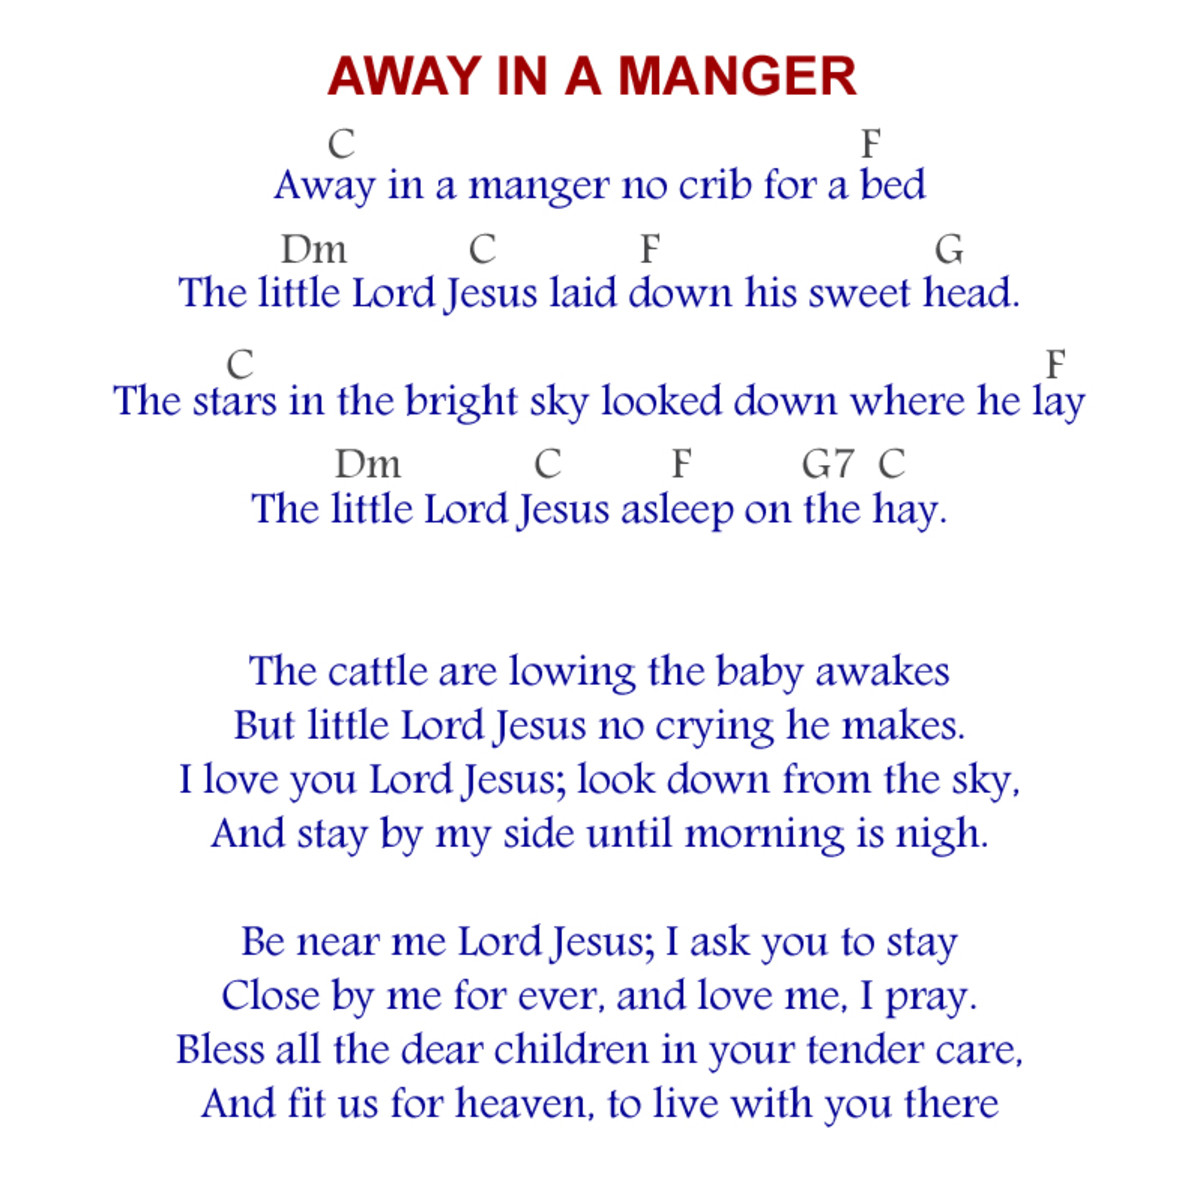 away-in-a-manger-acoustic-guitar-arrangement